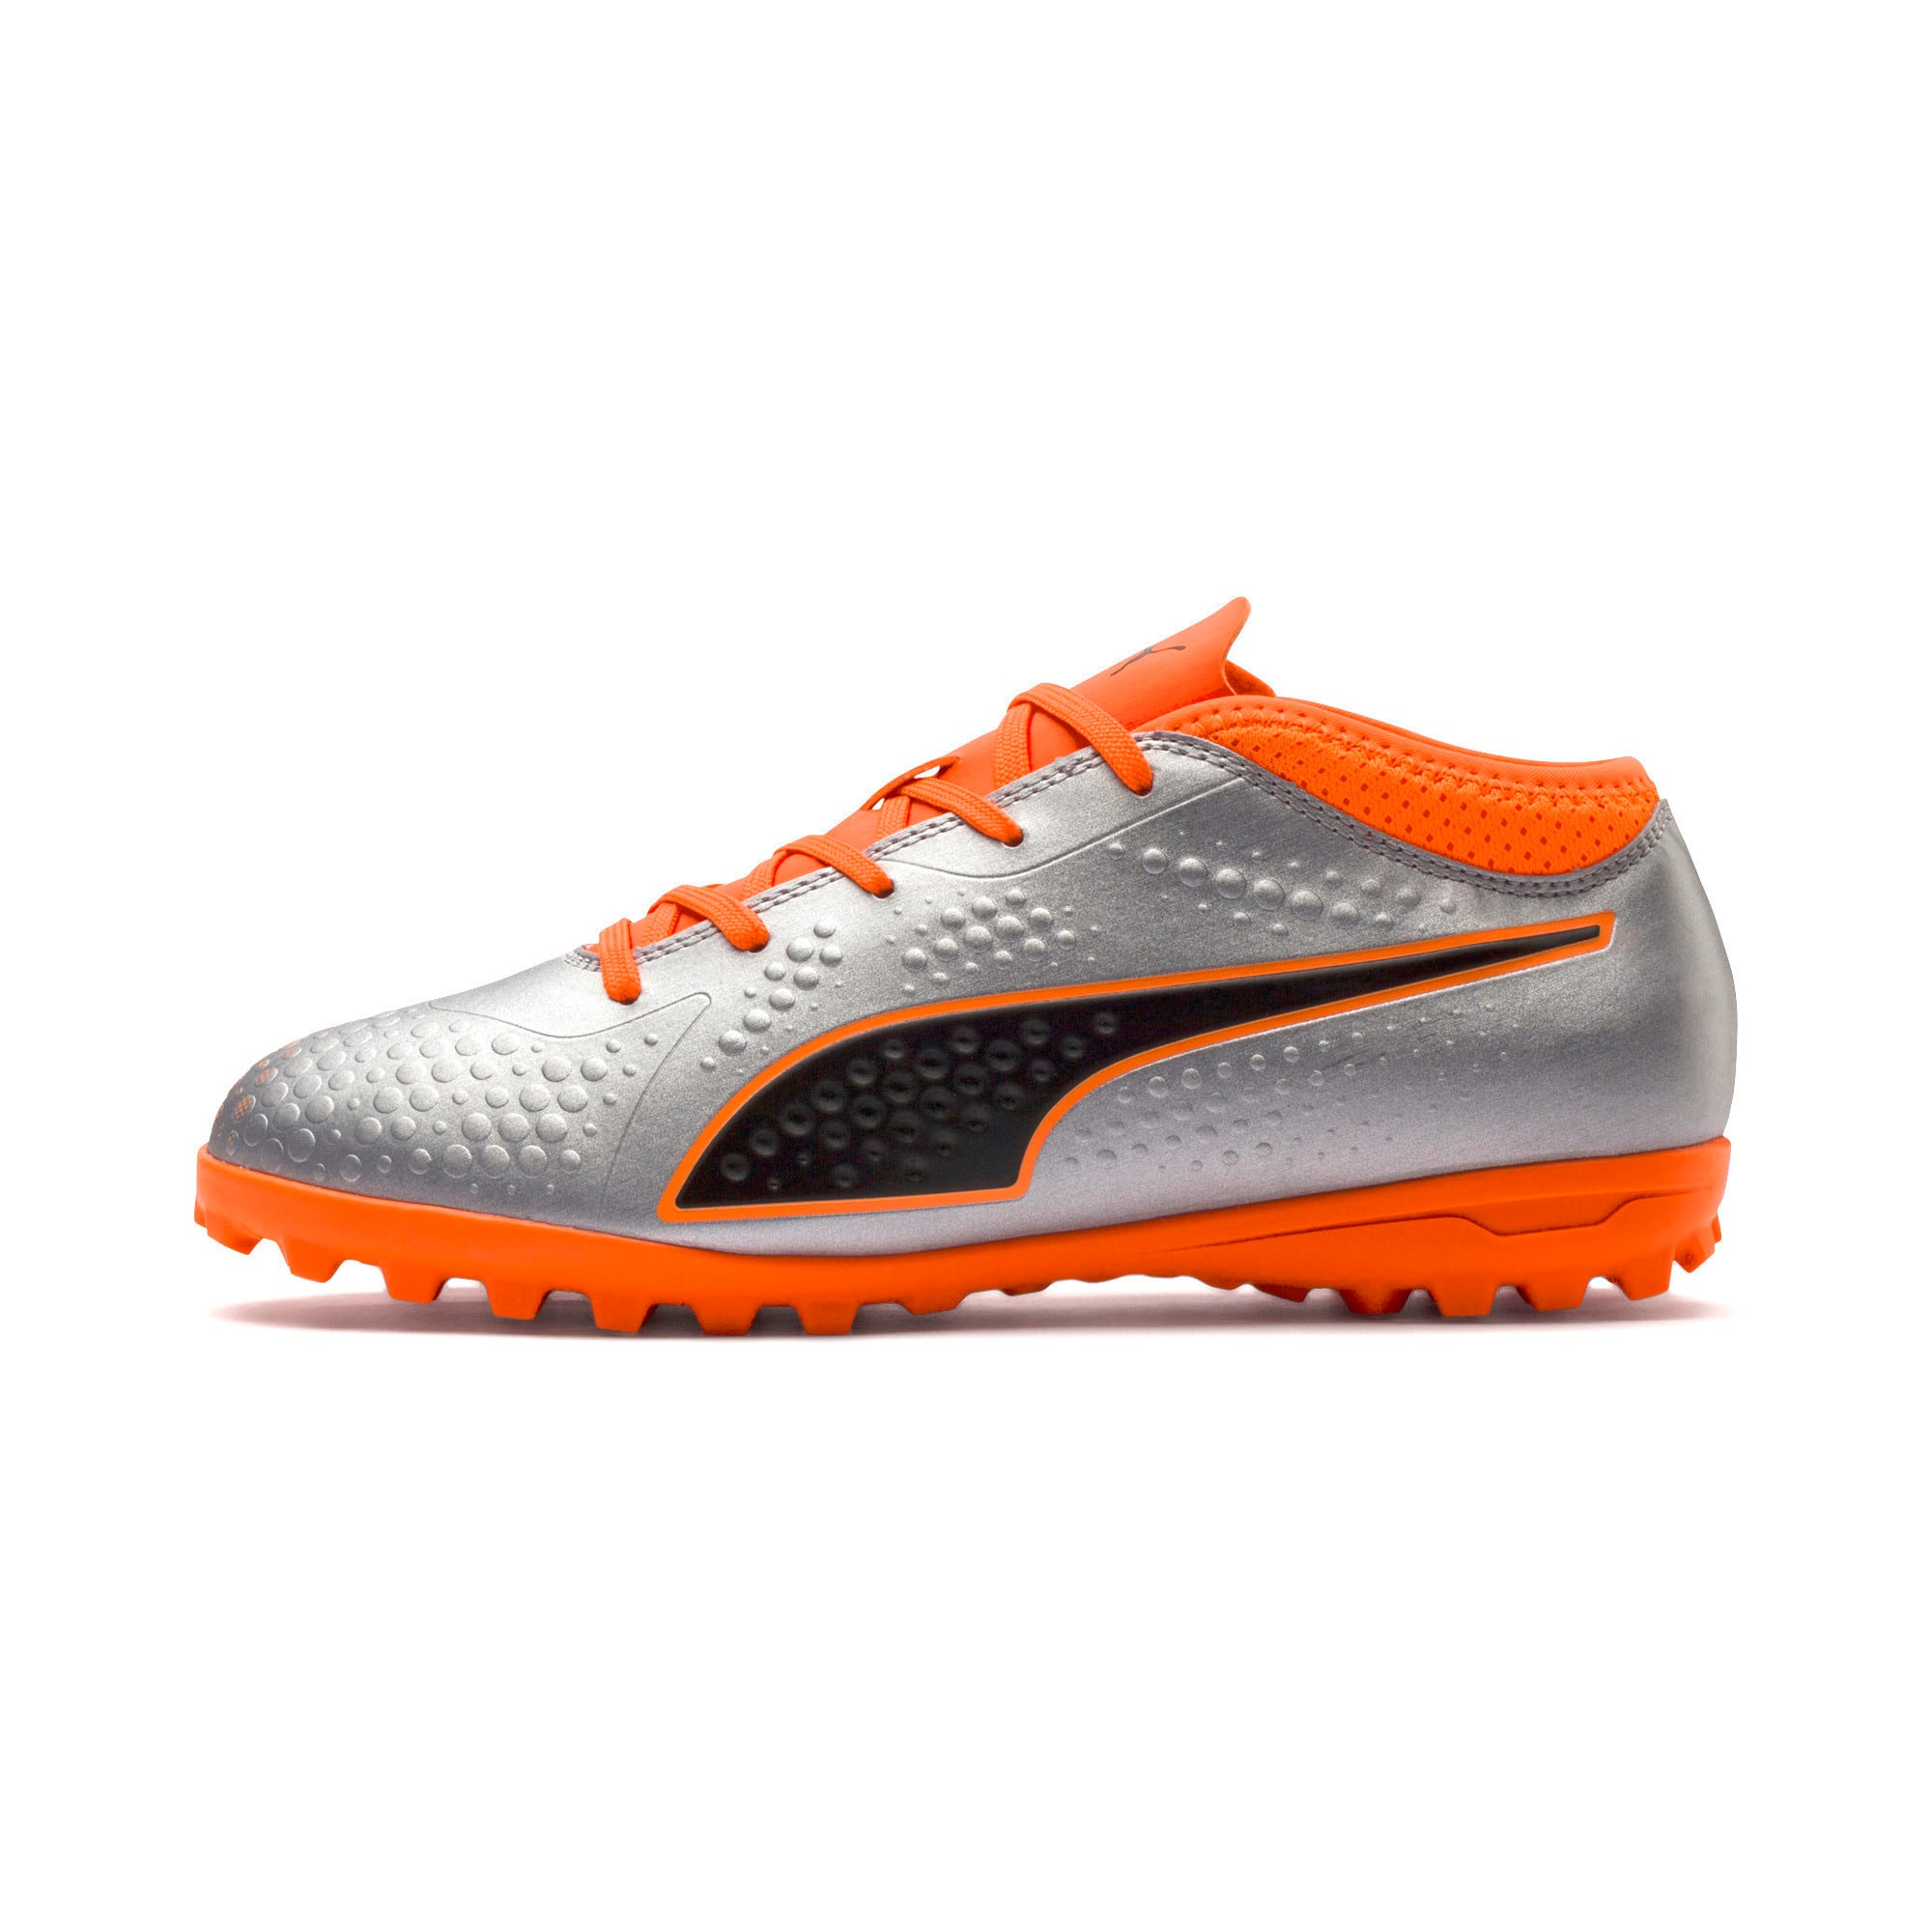 Thumbnail 1 of PUMA ONE 4 Synthetic IT Kid's Football Shoes, Silver-Orange-Black, medium-IND